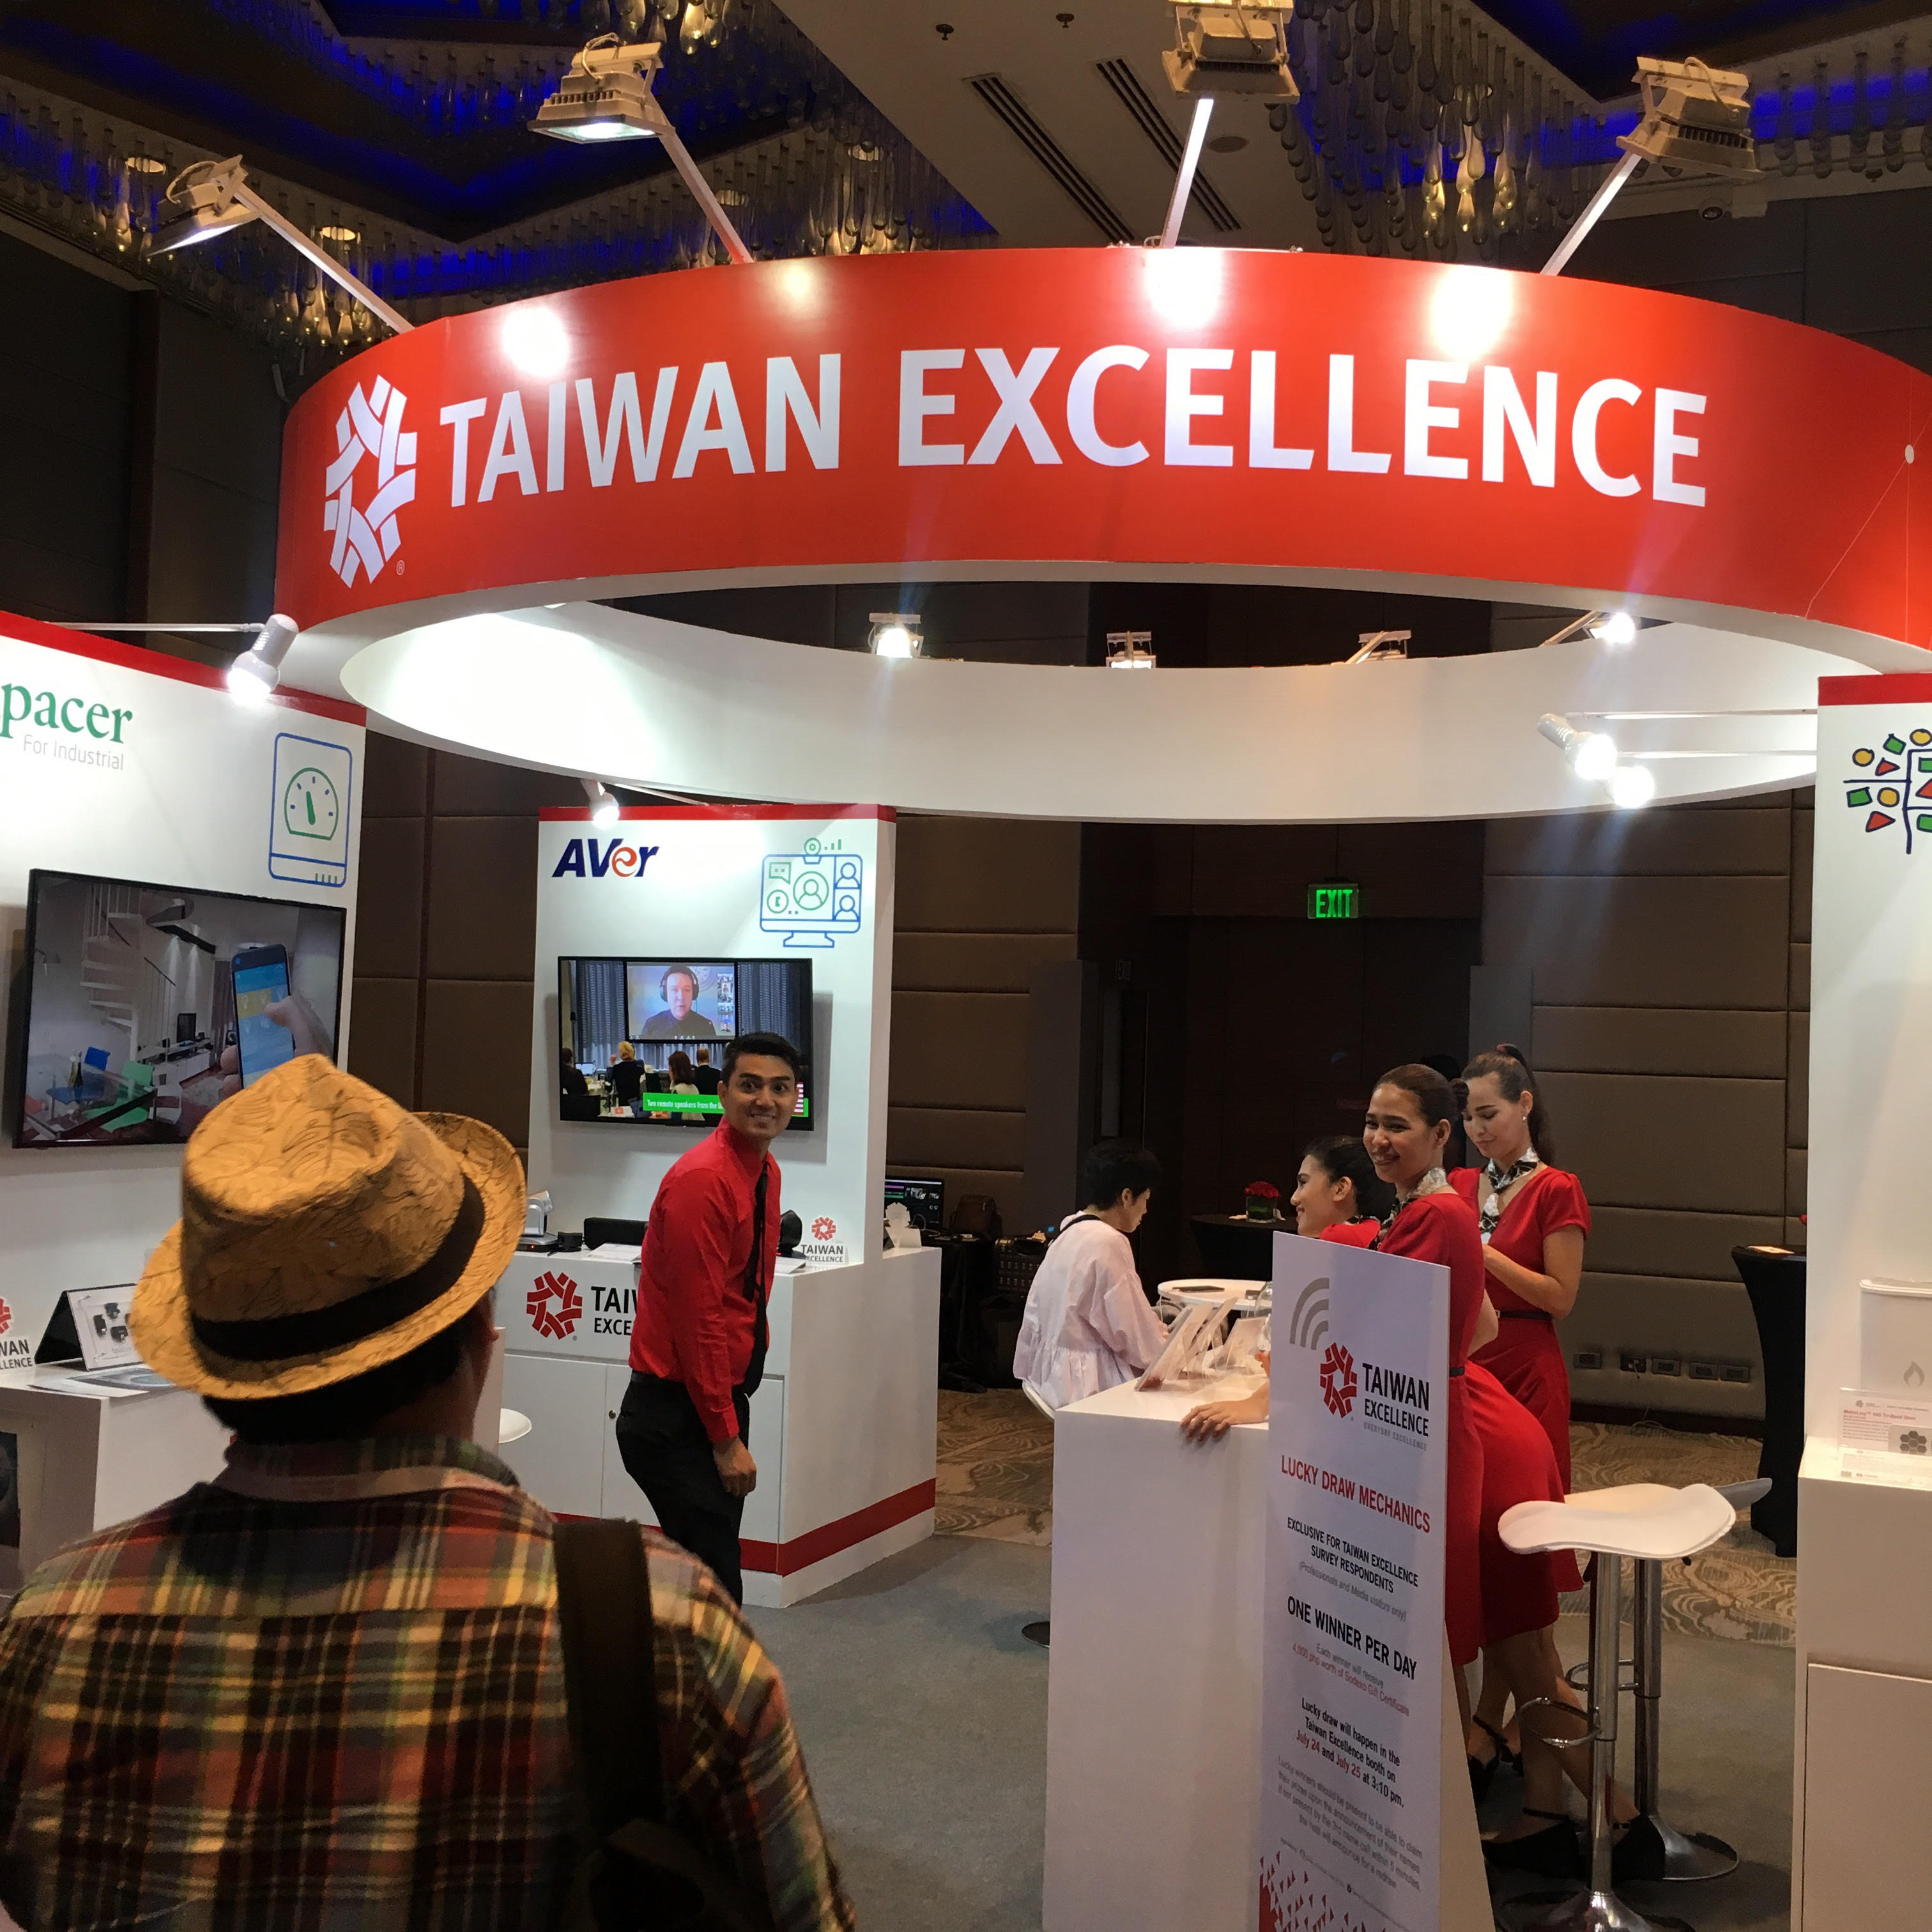 Taiwan's ICT and IoT leadership can further PH and ASEAN growth